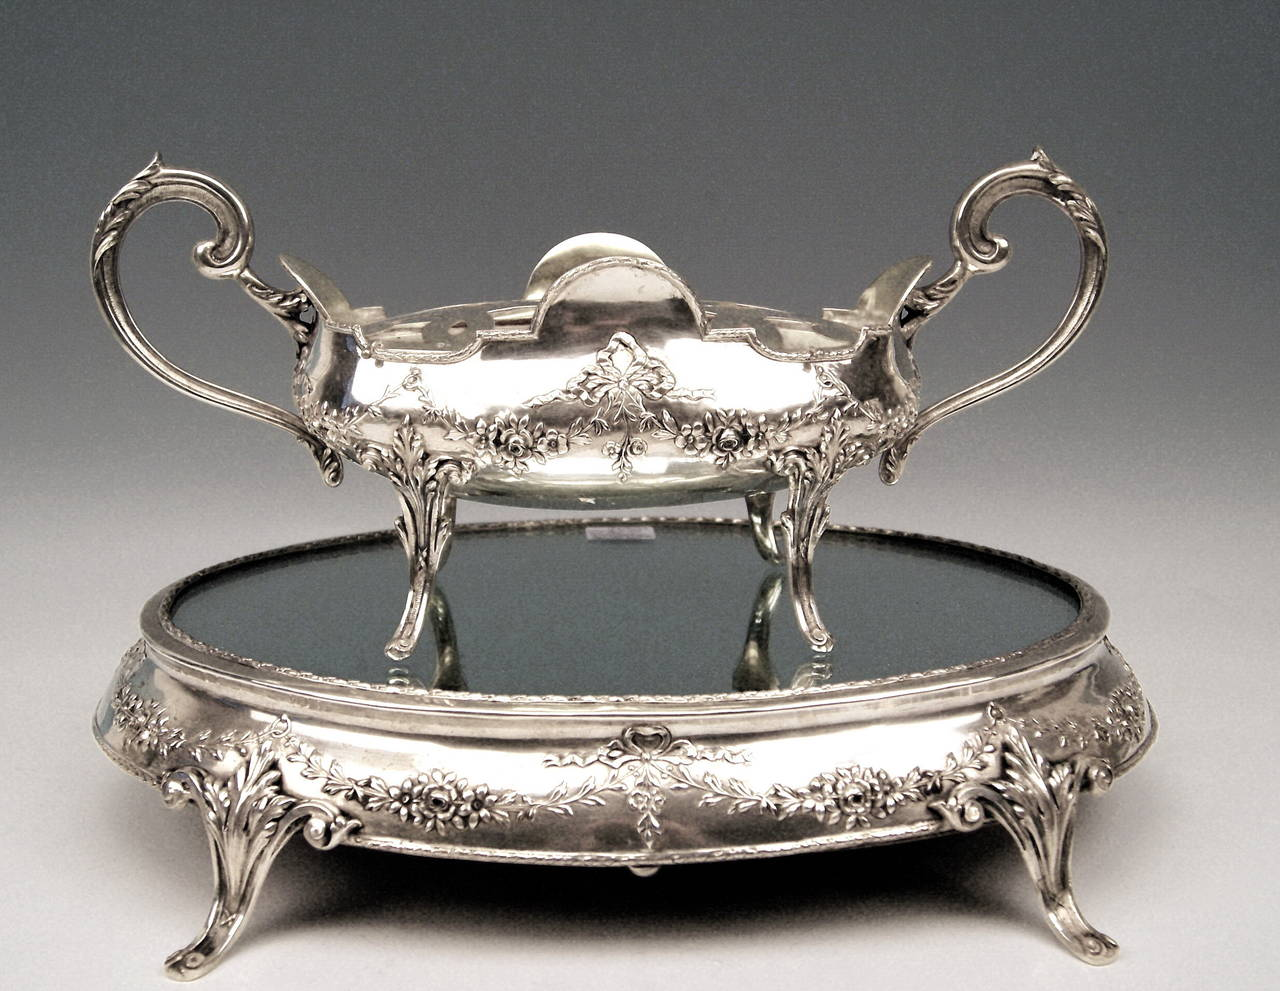 Silver Art Nouveau Rare Flower Bowl with Large Oval Support Made in Porto, 1900 2